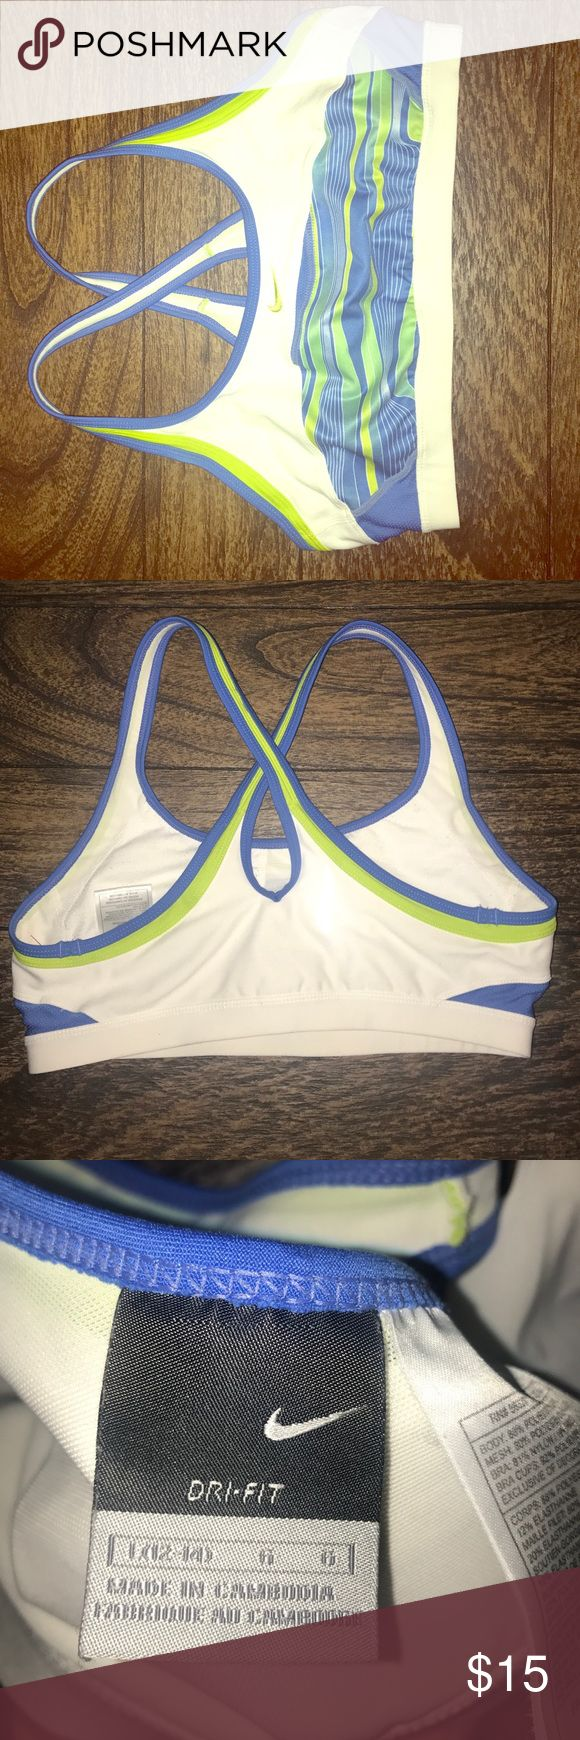 Nike dry fit sports bra Large white blue and green Nike Dry fit sports bra white blue and green size Large perfect condition crisscross strap beautiful bra worn once washed once Nike Intimates & Sleepwear Bras